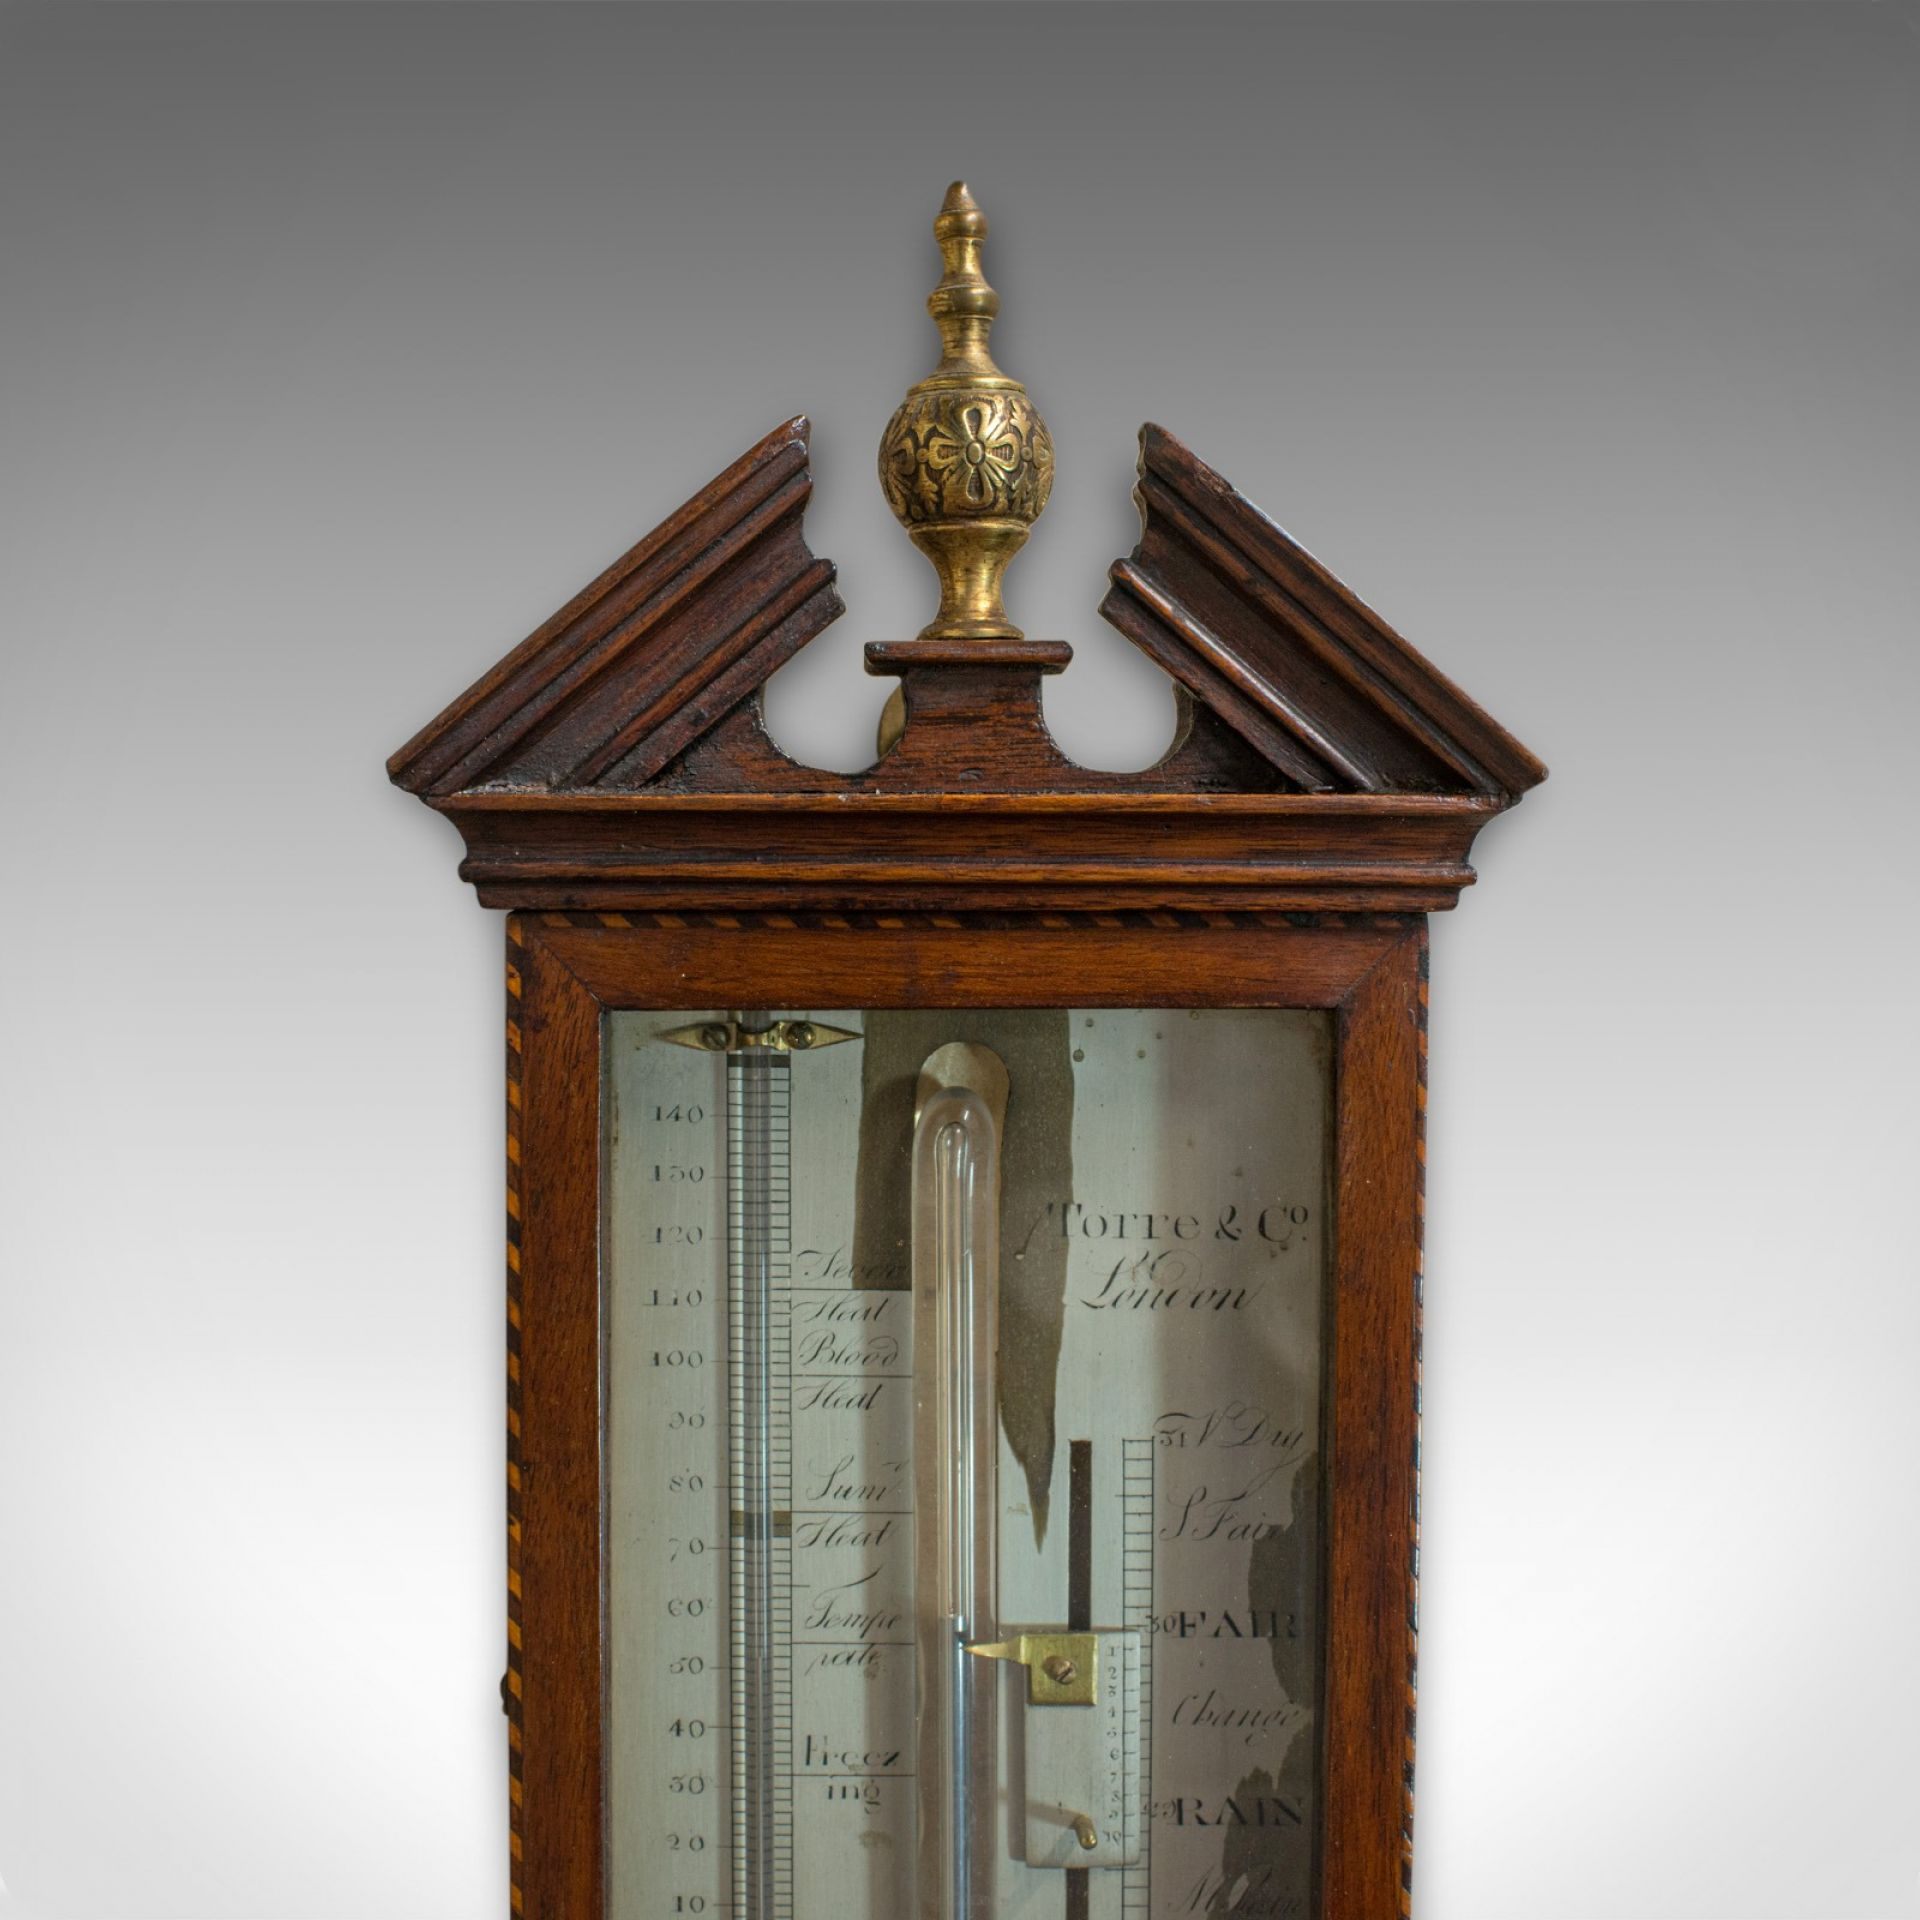 Antique Stick Barometer, English, Mahogany, Torre and Co, London, Circa 1850